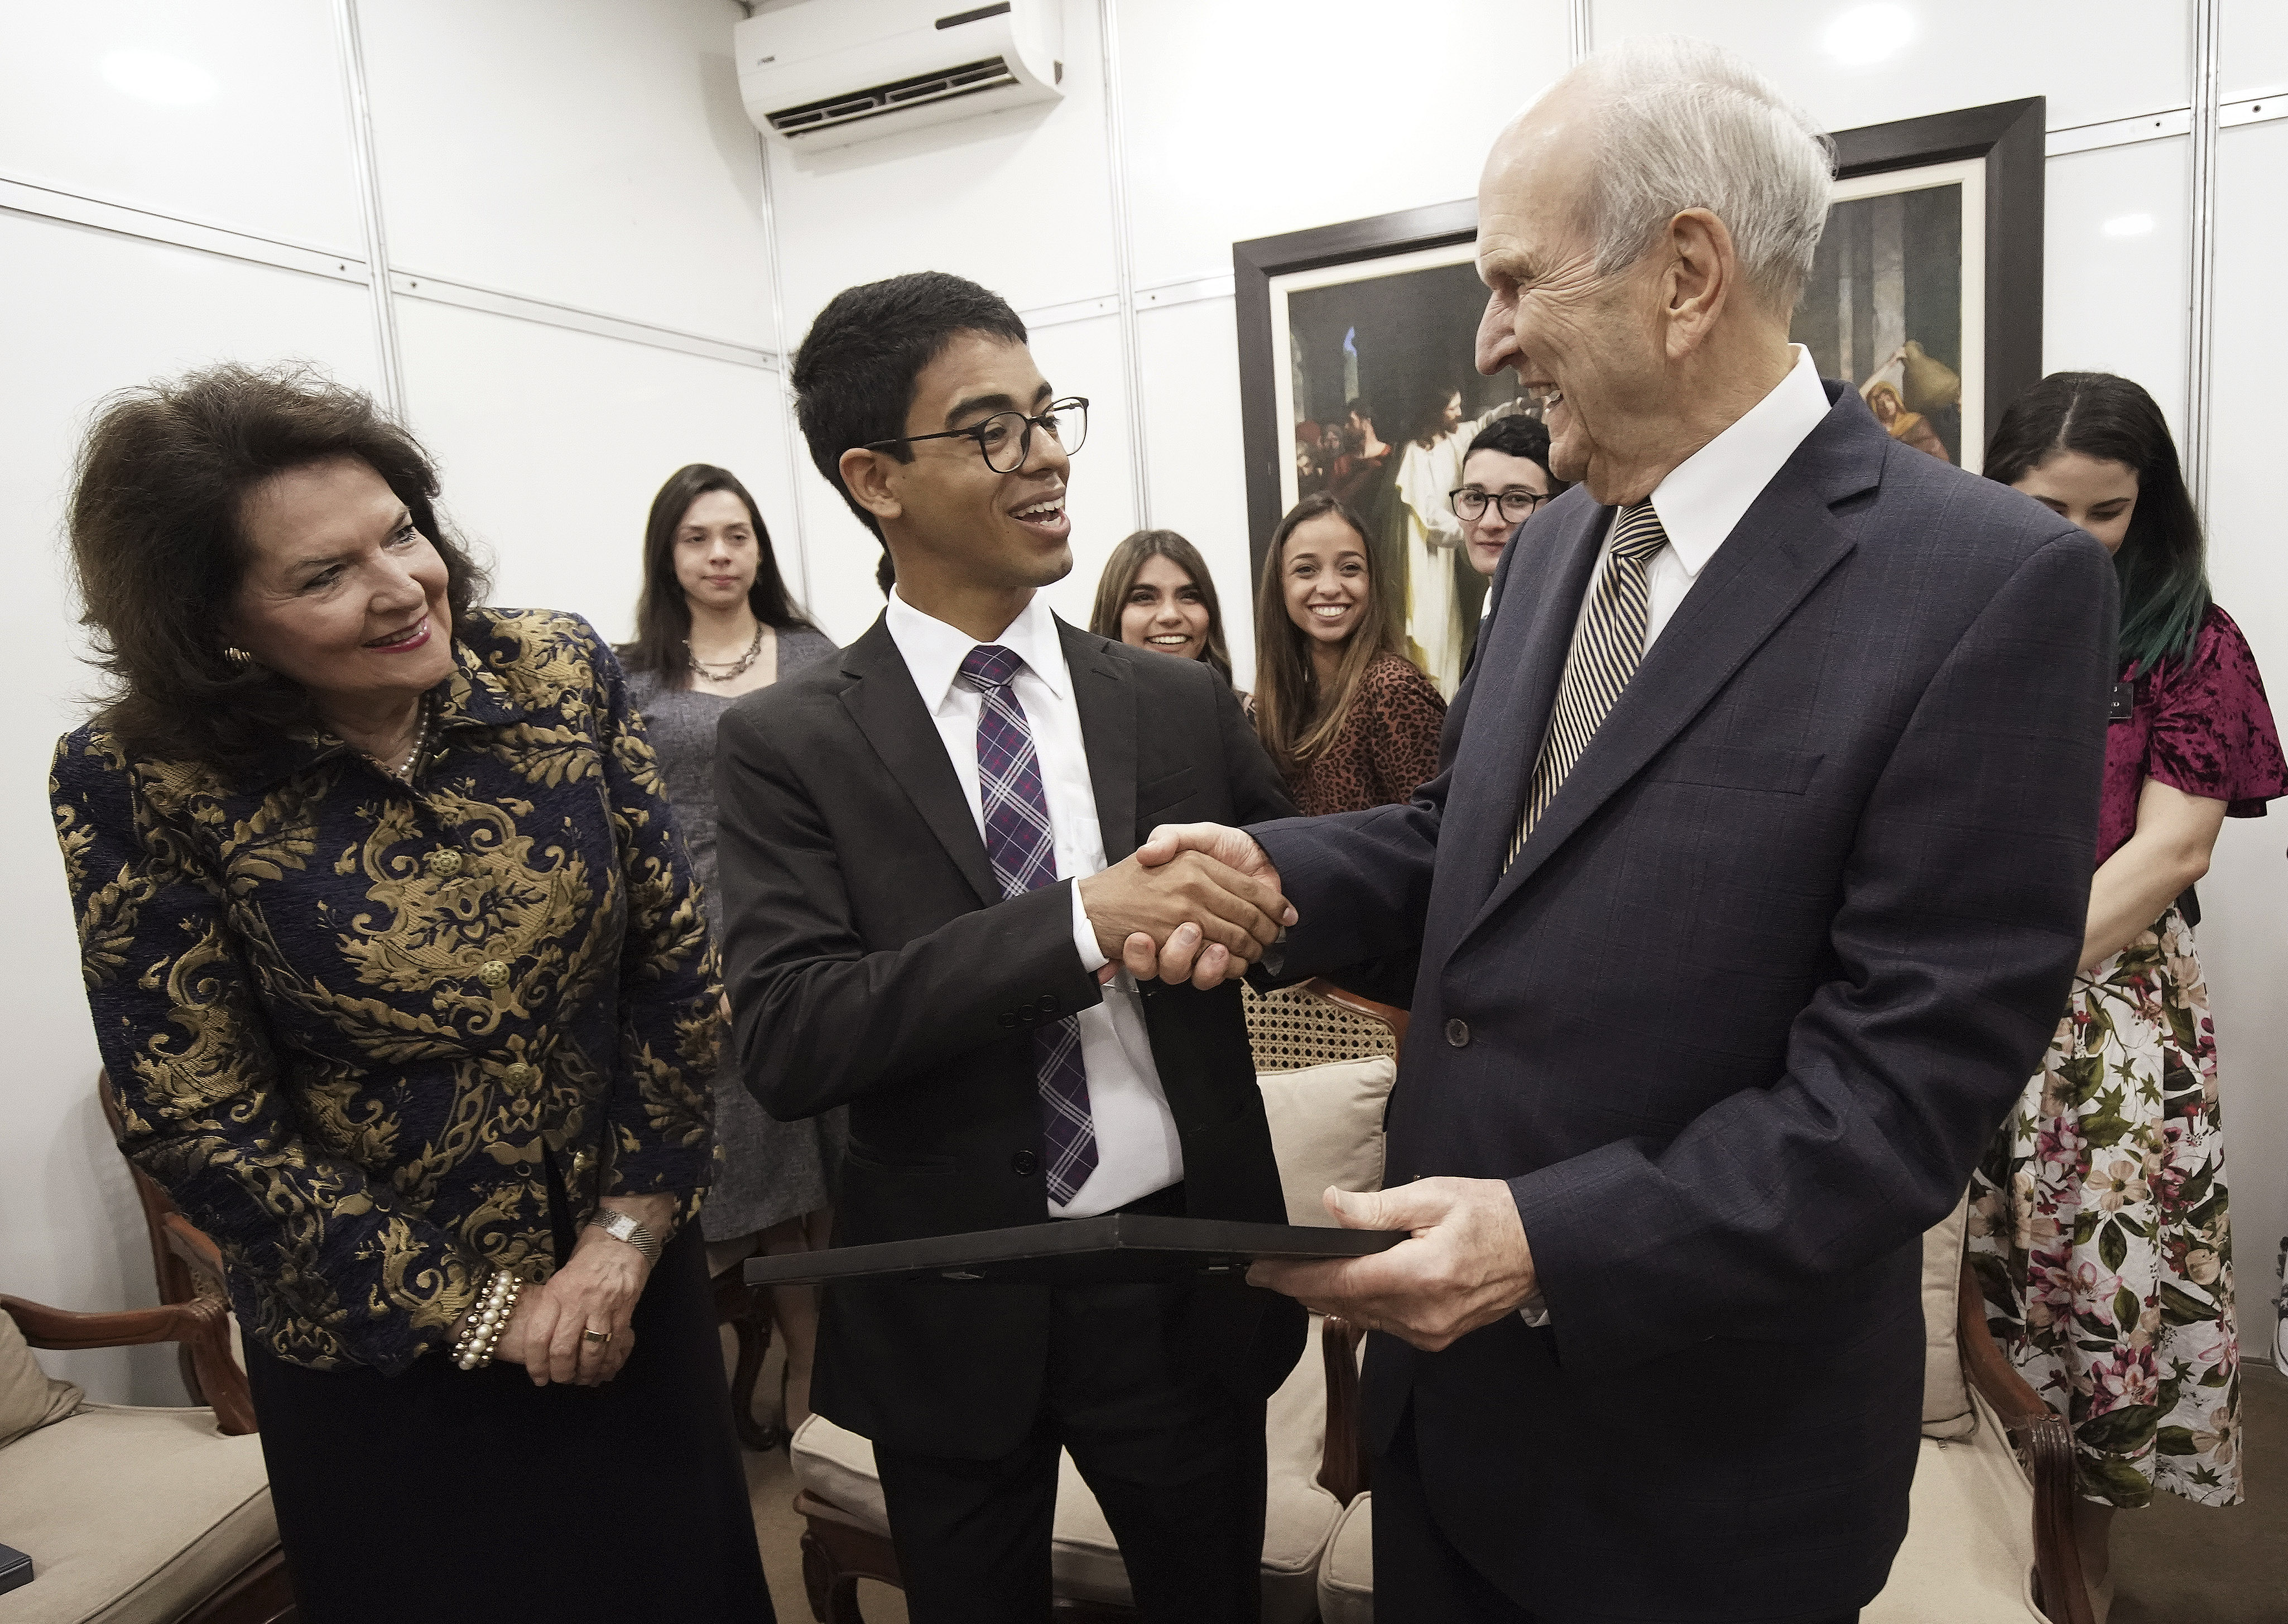 President Russell M. Nelson of The Church of Jesus Christ of Latter-day Saints and his wife Sister Wendy Nelson are given a drawing by Wesley Silva in Sao Paulo, Brazil, on Sunday, Sept. 1, 2019.